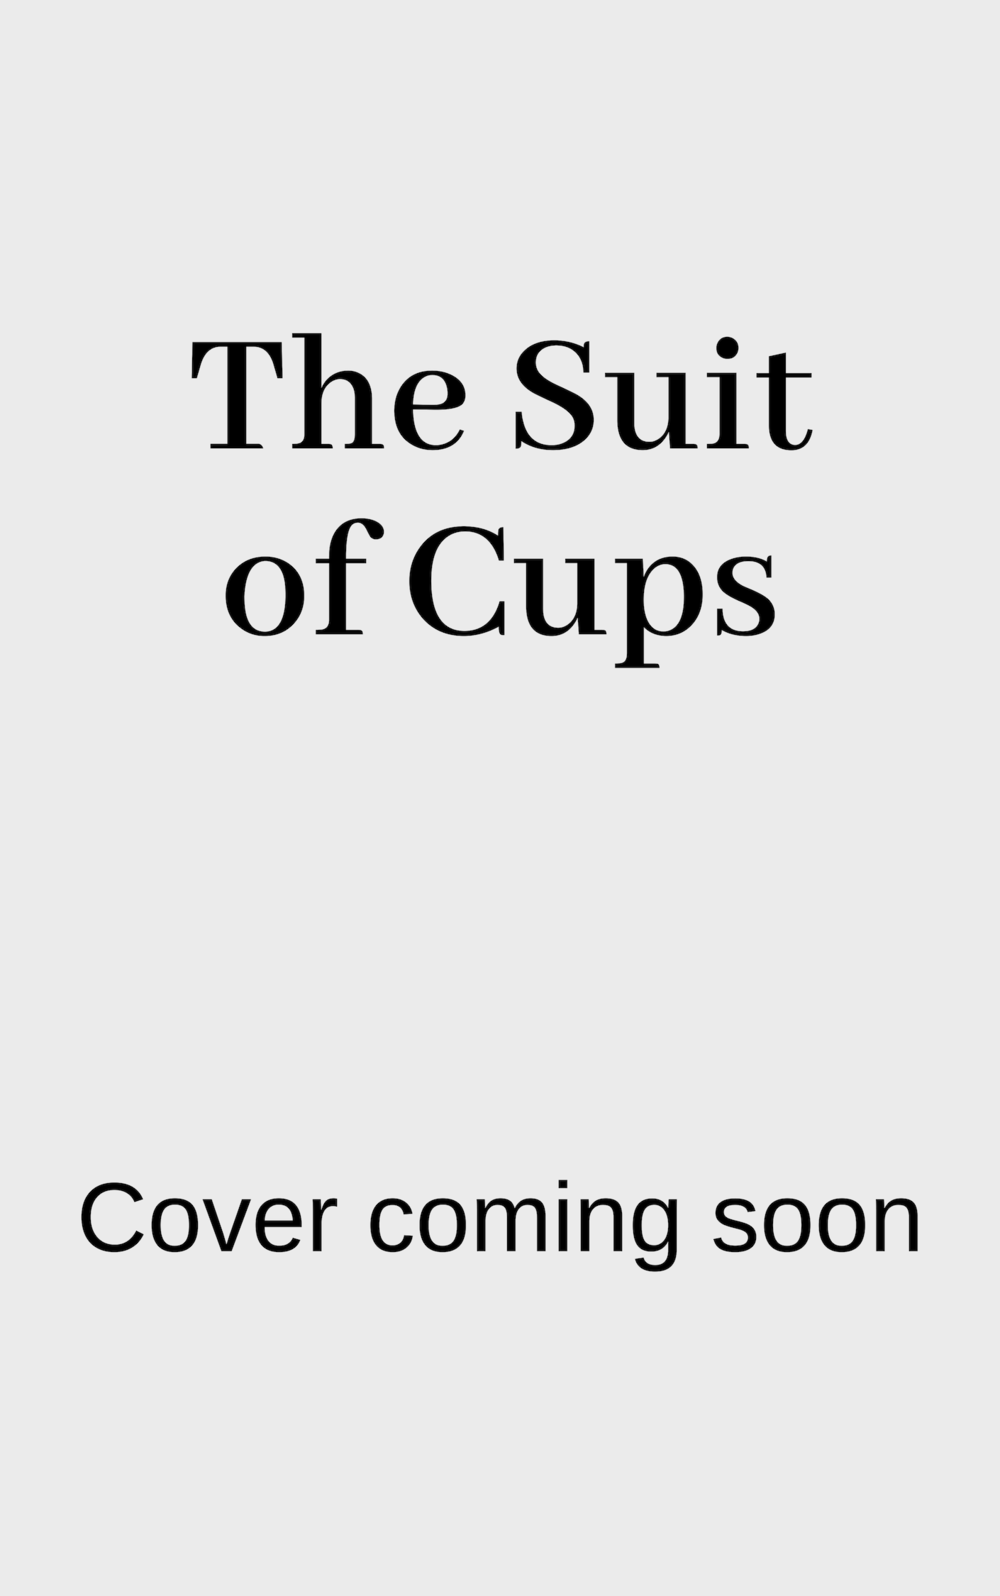 suit of cups placeholder cover.png